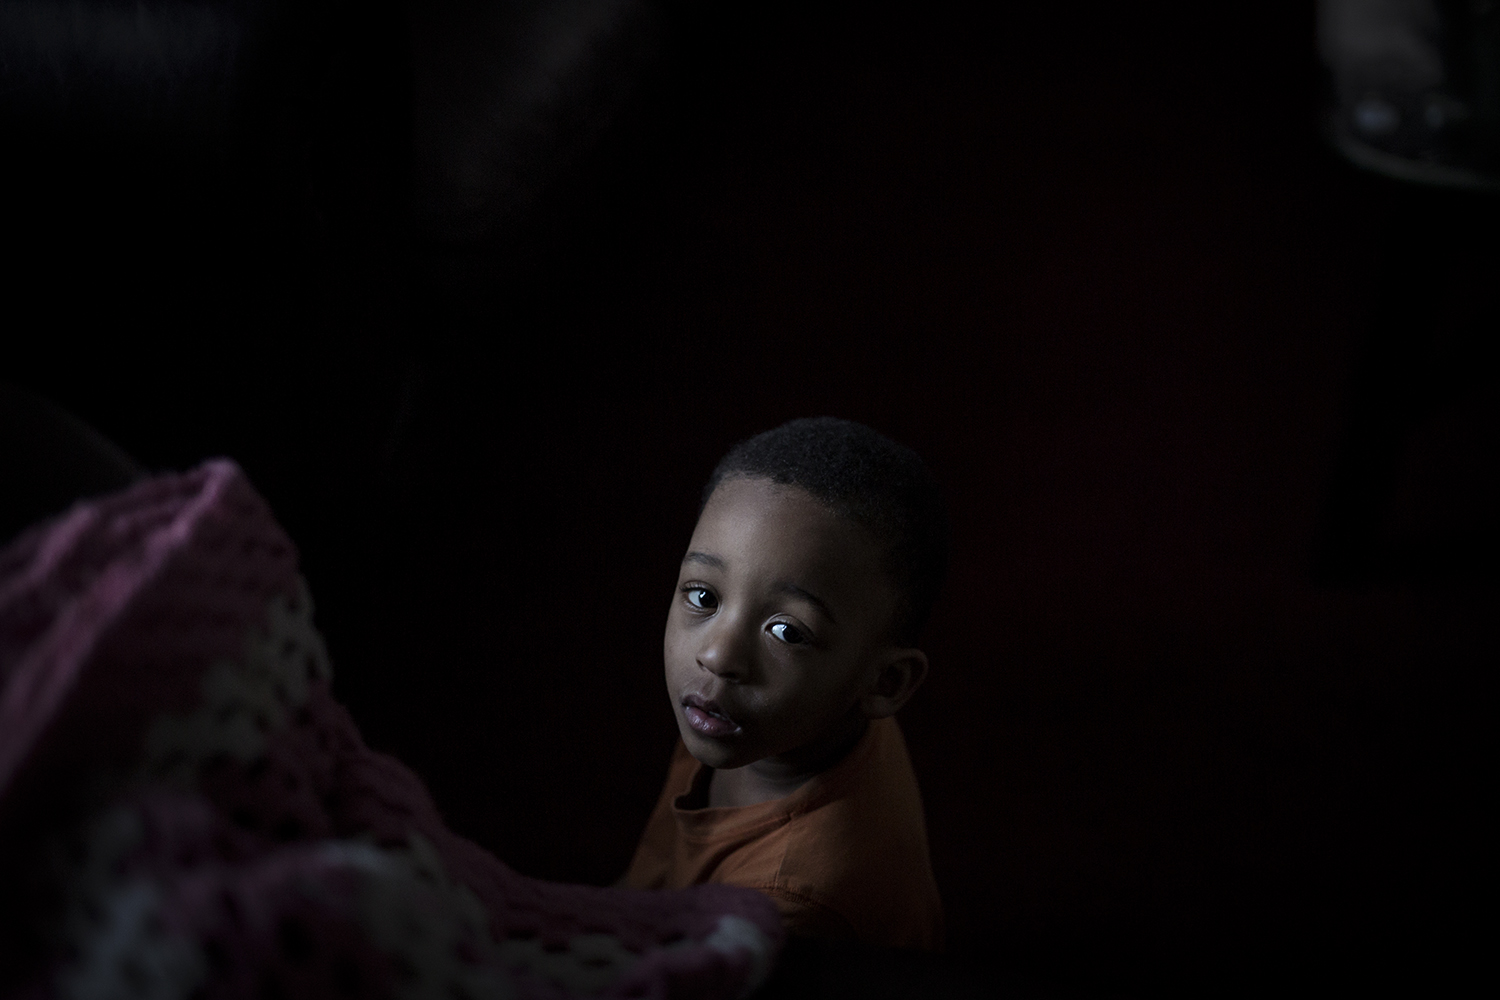 Flint, MI - Feb. 11, 2016:  Ja'Son Keith, 2, sits on the floor in front of a small space heater to keep warm in the living room on Thursday, Feb. 11, 2016 in Flint, MI. 